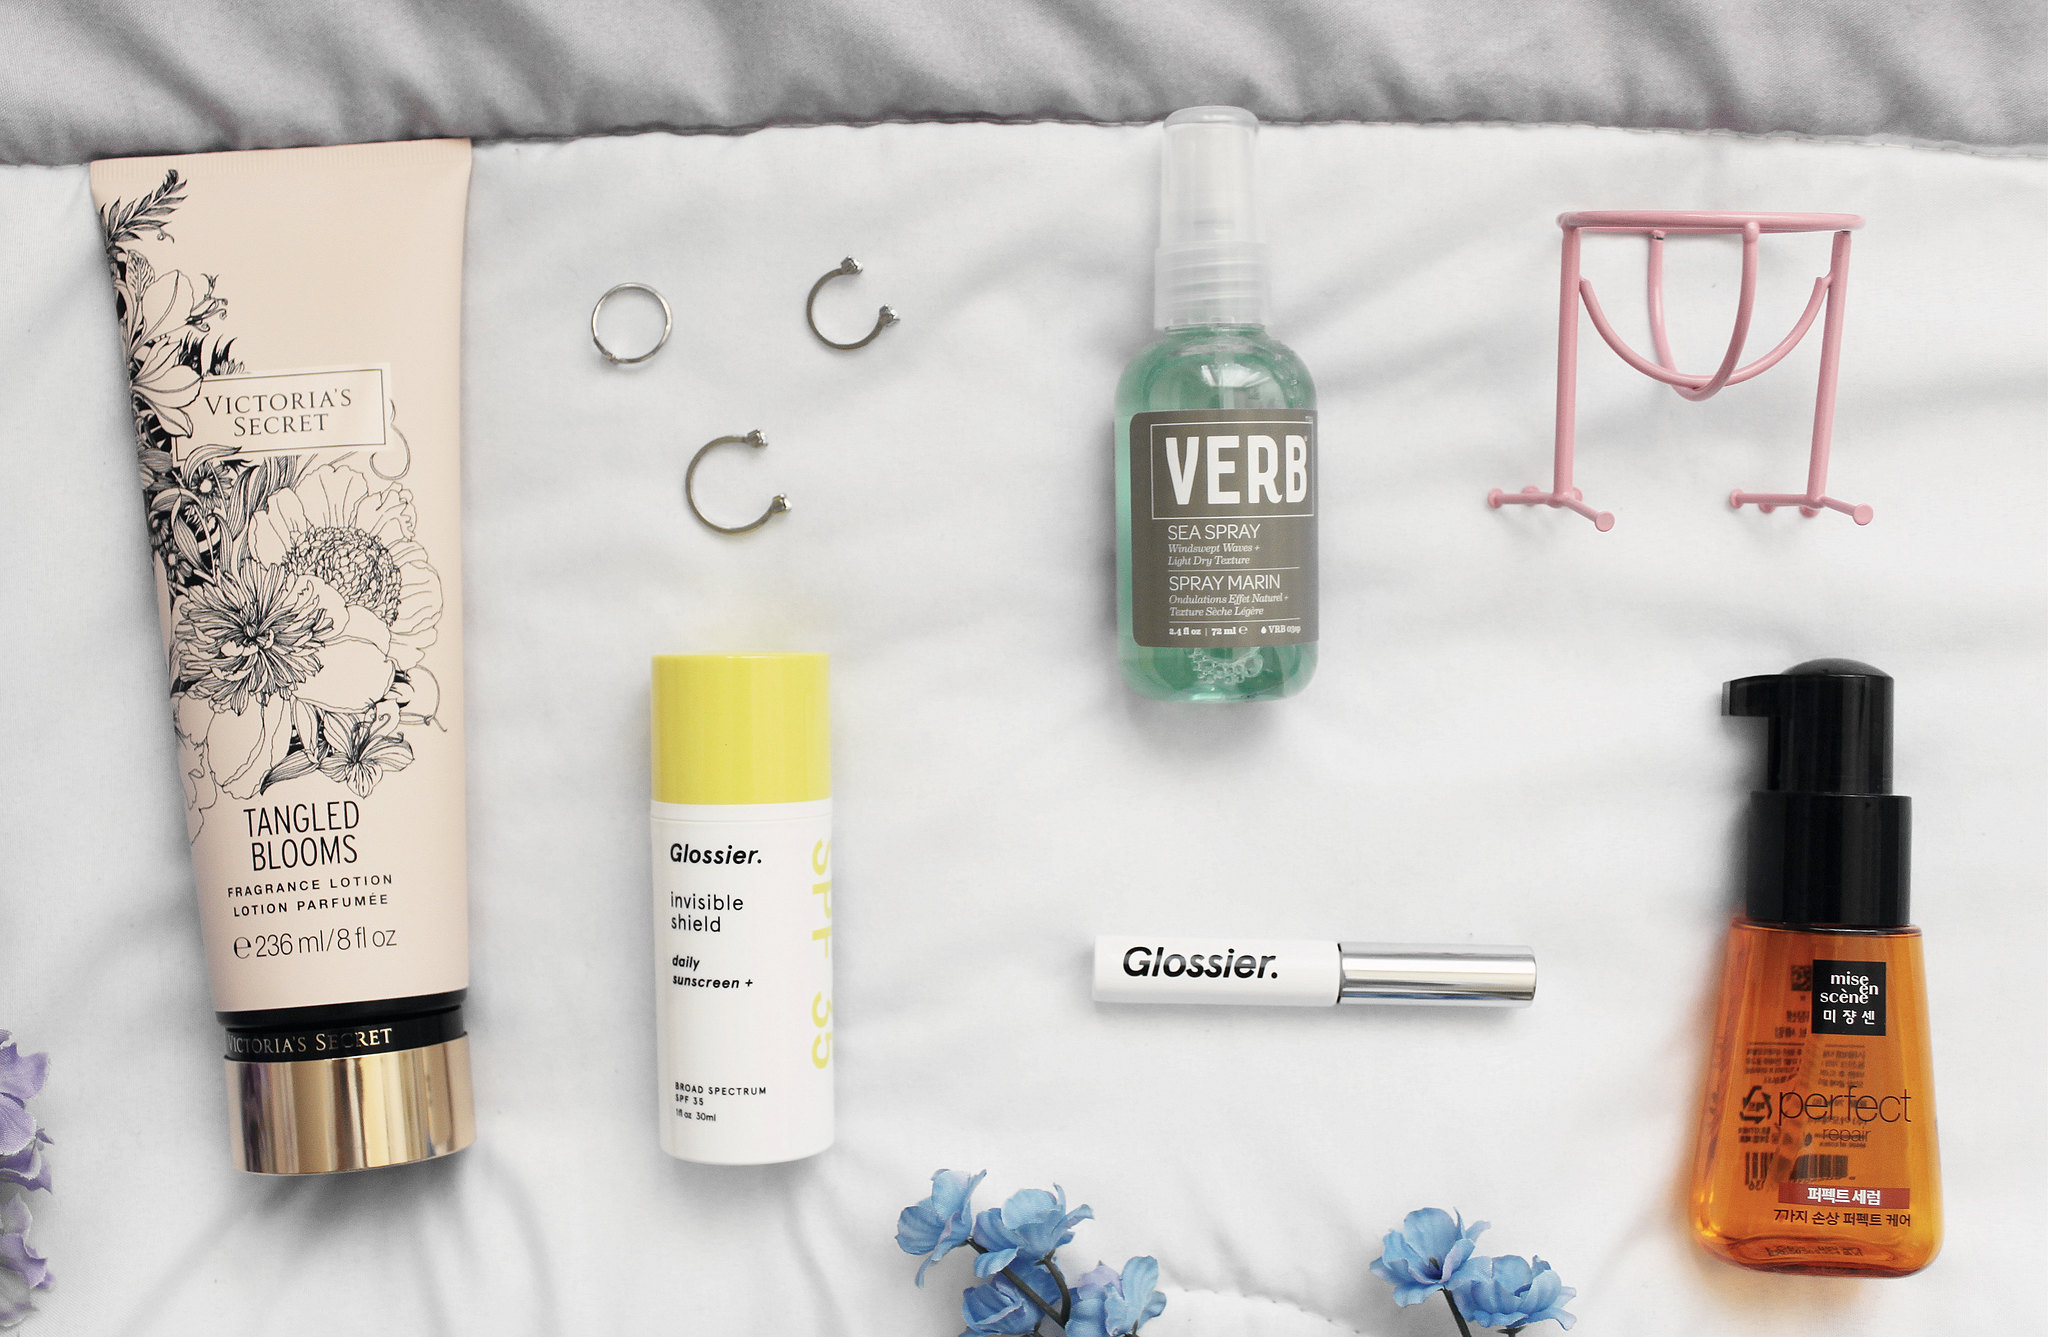 5946-beauty-makeup-skincare-sephora-vibrouge-glossier-victoriassecret-verb-yesstyle-clothestoyouuu-elizabeeetht-flatlay